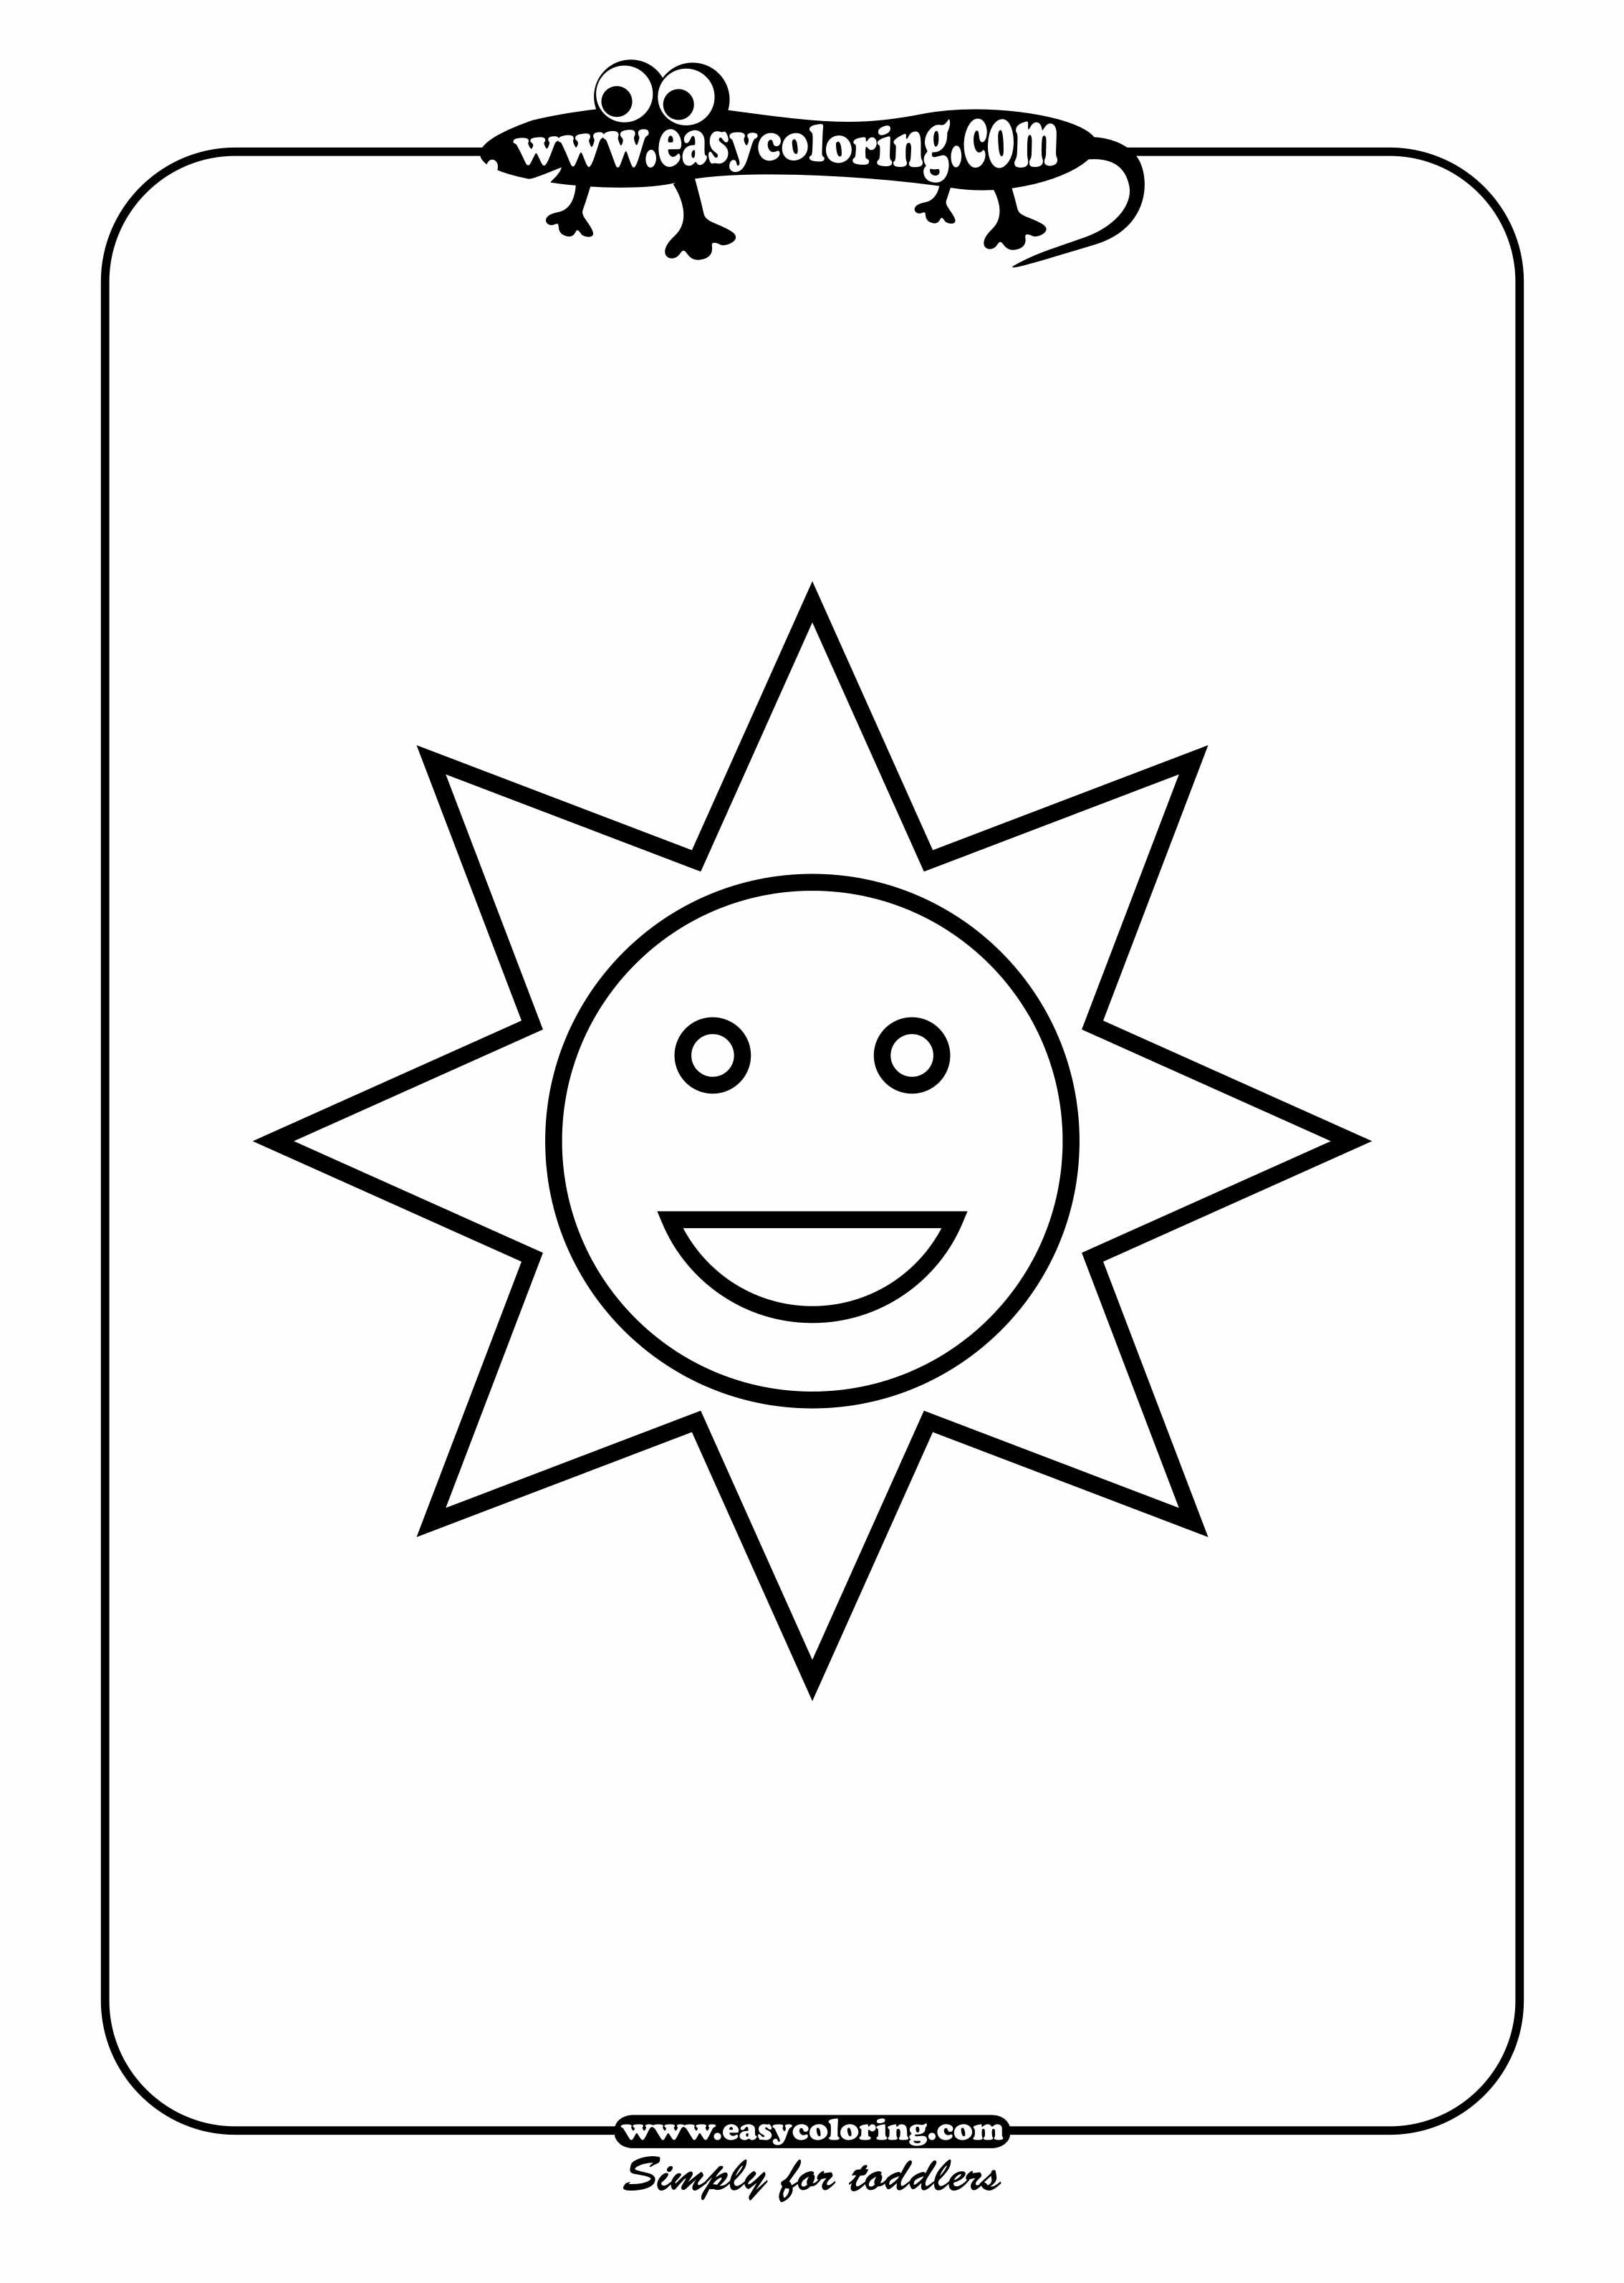 Sun Simple Shapes Easy Coloring Pages For Toddlers Sun Coloring Pages Easy Coloring Pages Coloring Pages